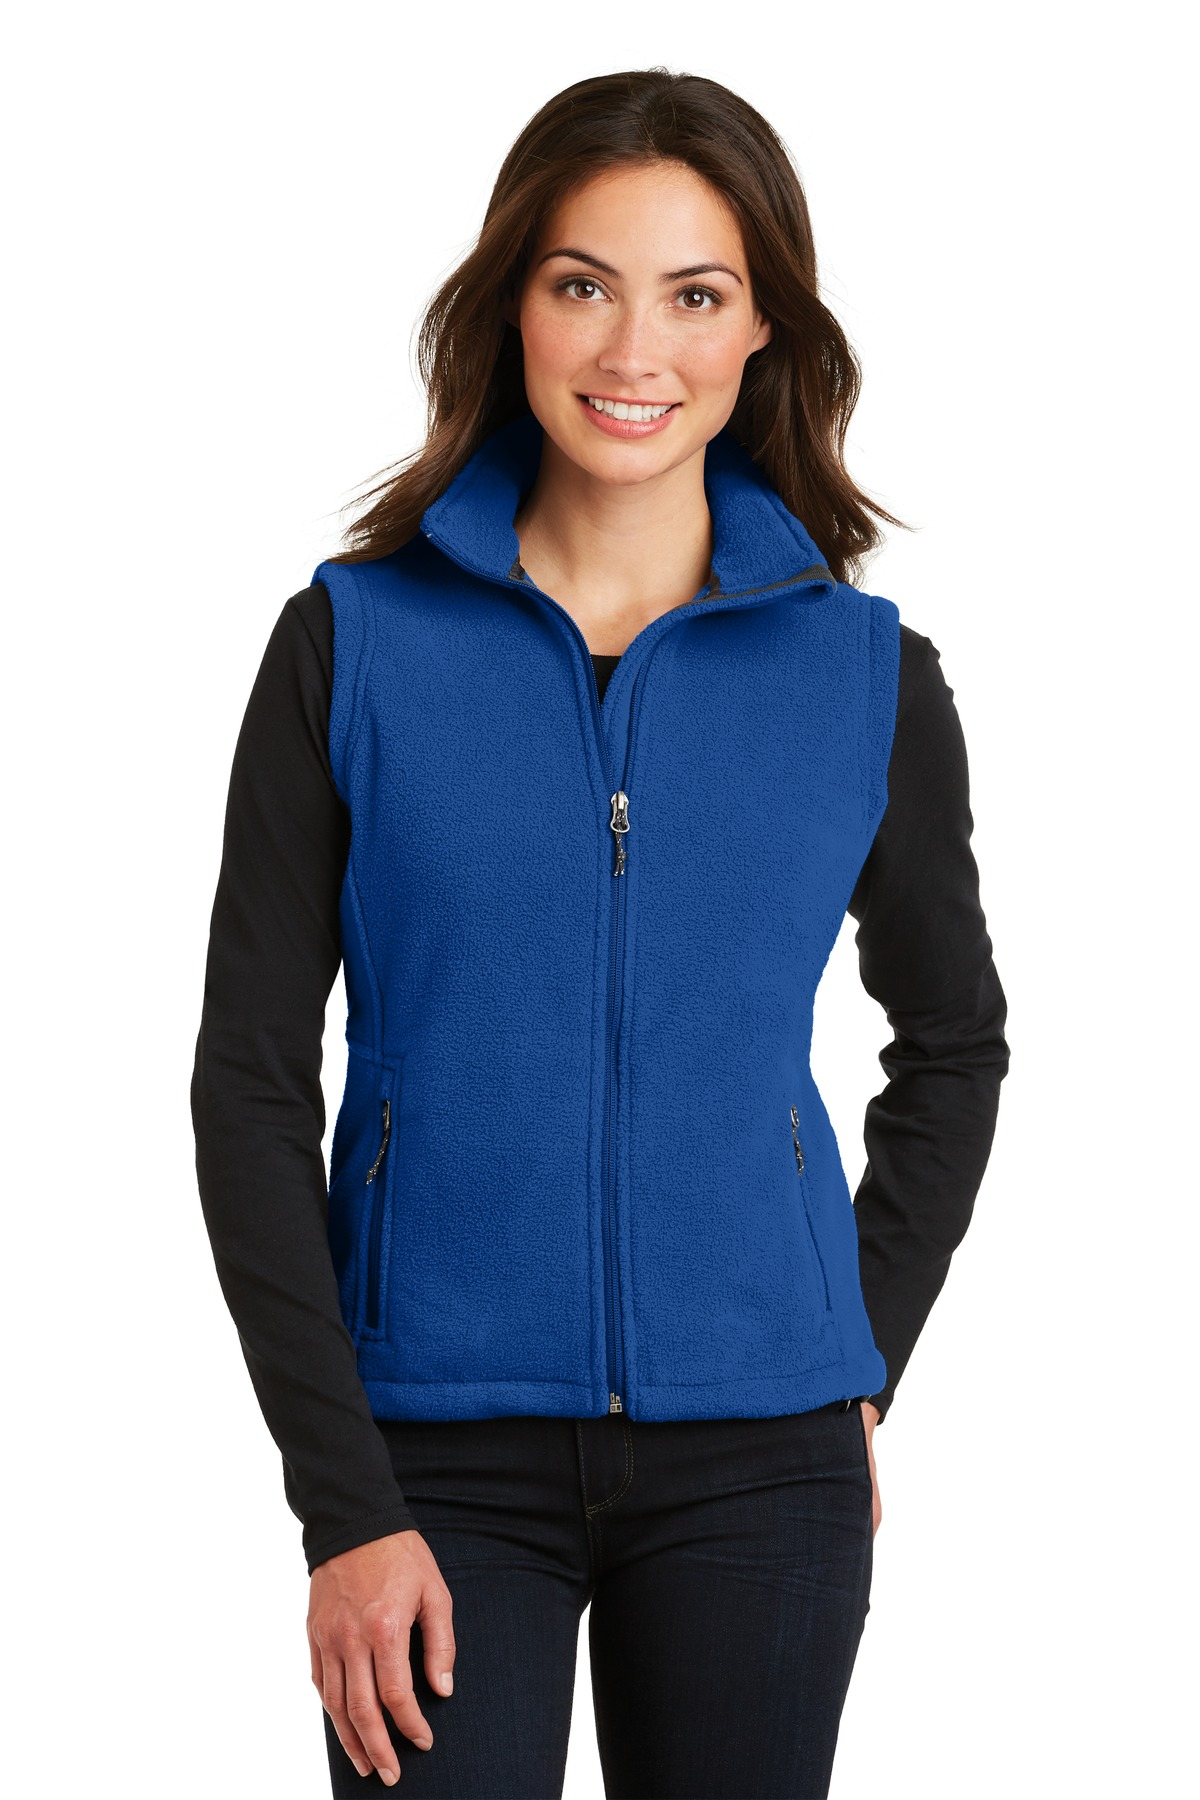 Port Authority ®  Ladies Value Fleece Vest. L219 - True Royal